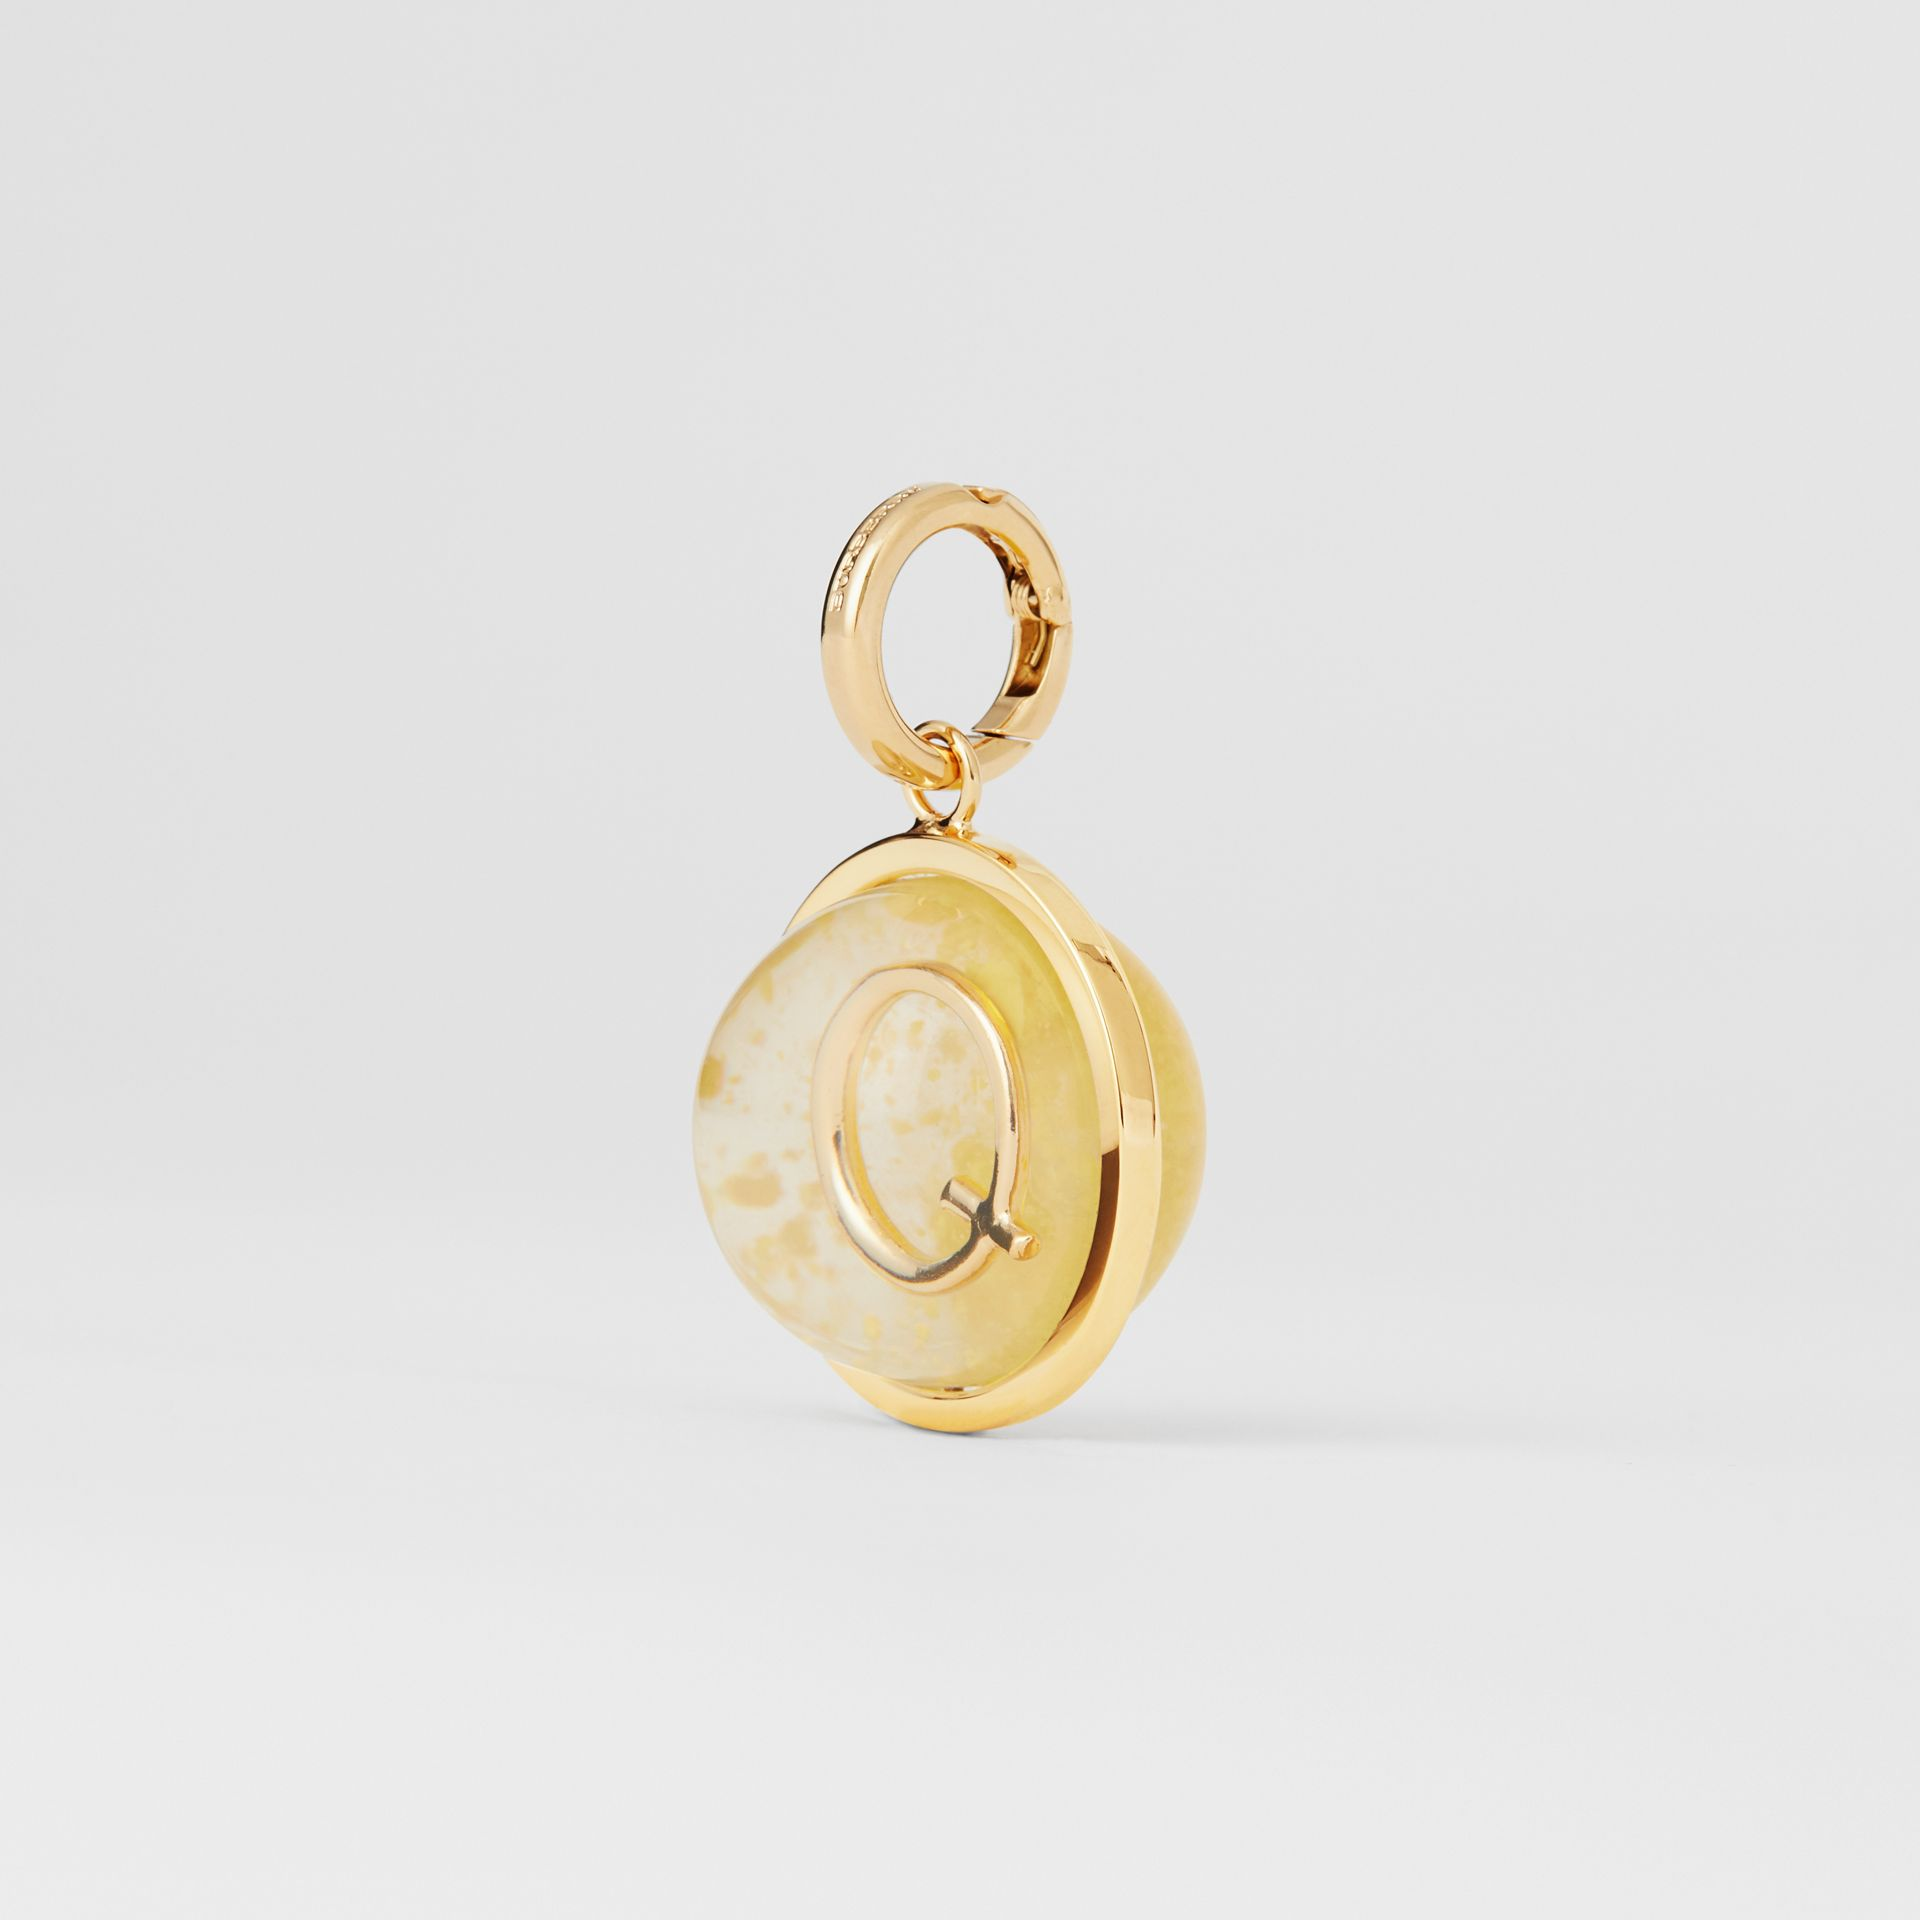 Marbled Resin 'Q' Alphabet Charm in Gold/mimosa - Women | Burberry - gallery image 4